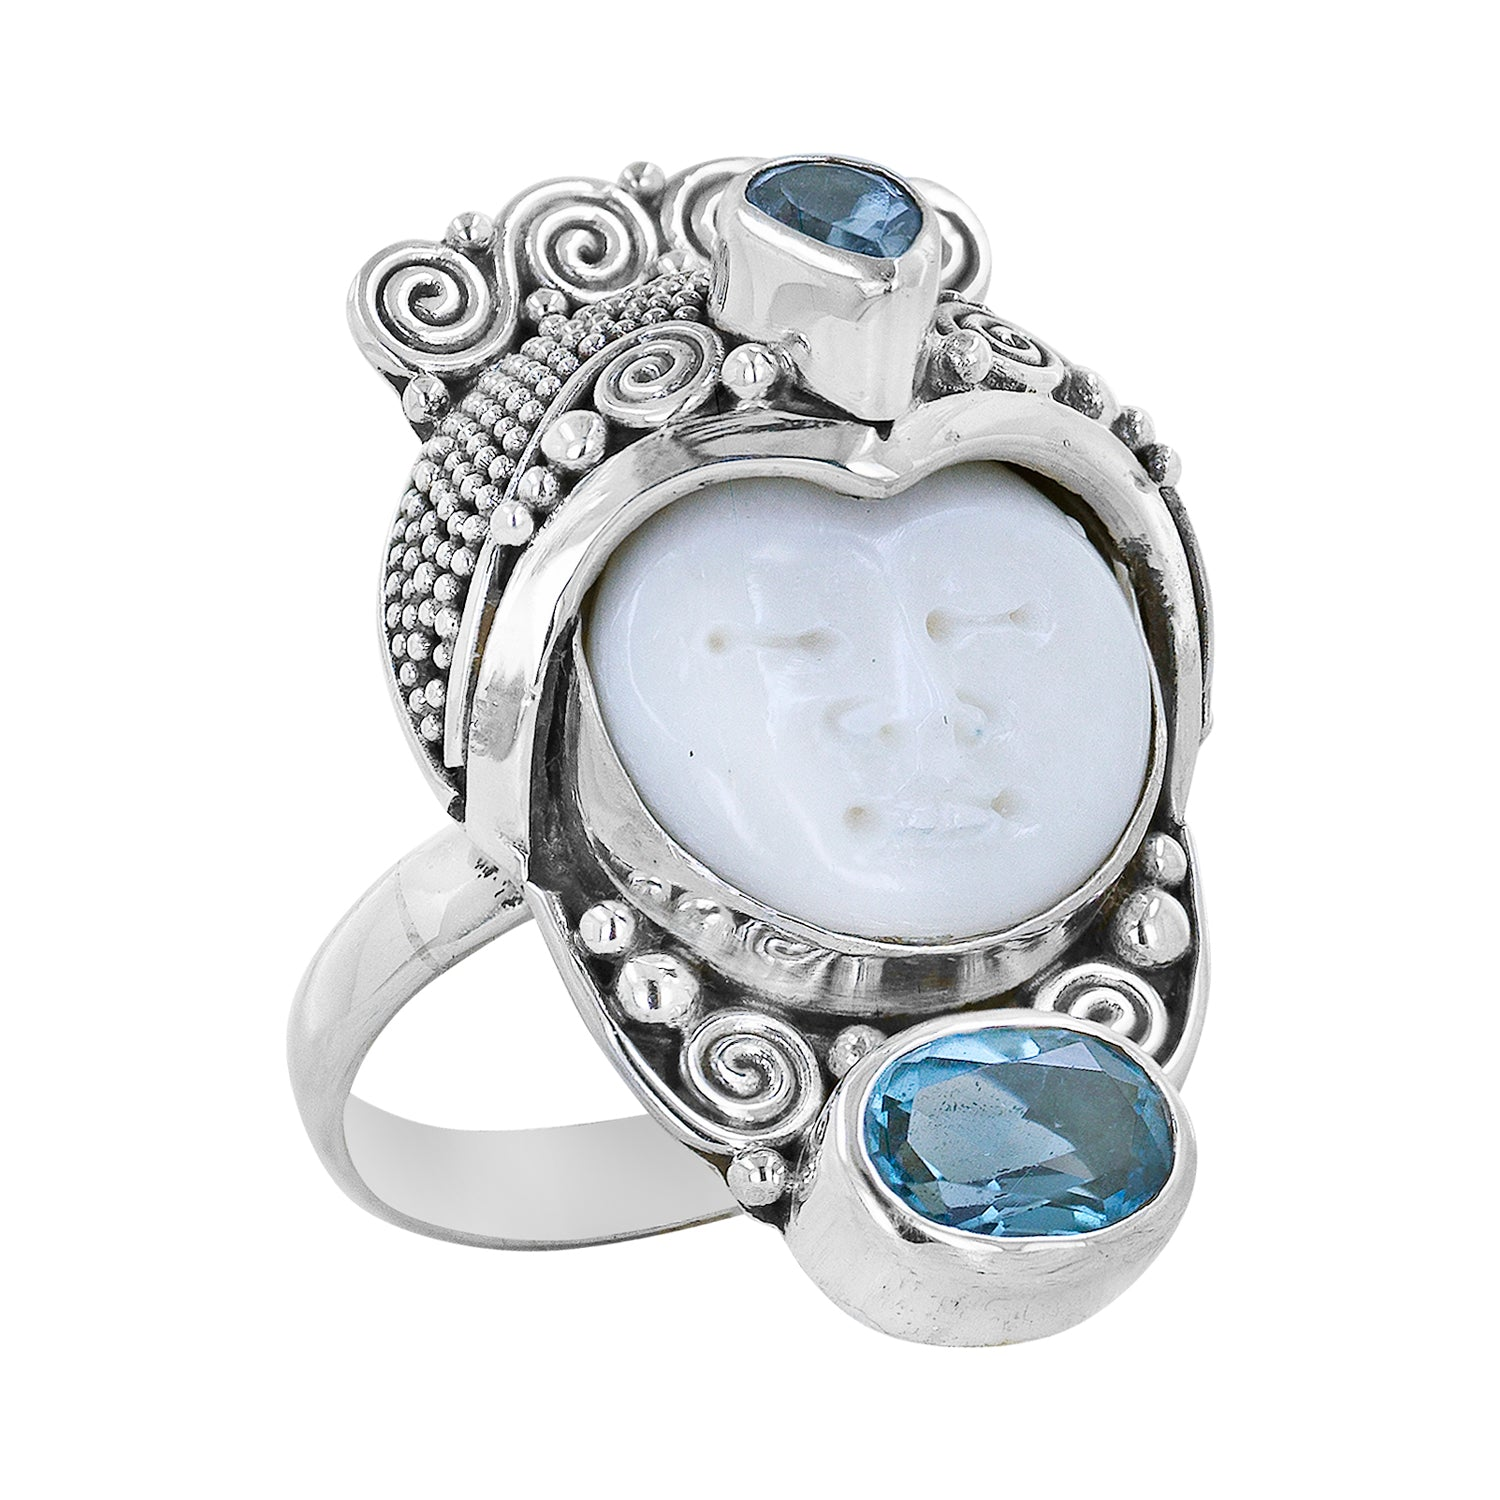 Sterling Silver Goddess Ring with Bone Carved Face and Blue Topaz Accents